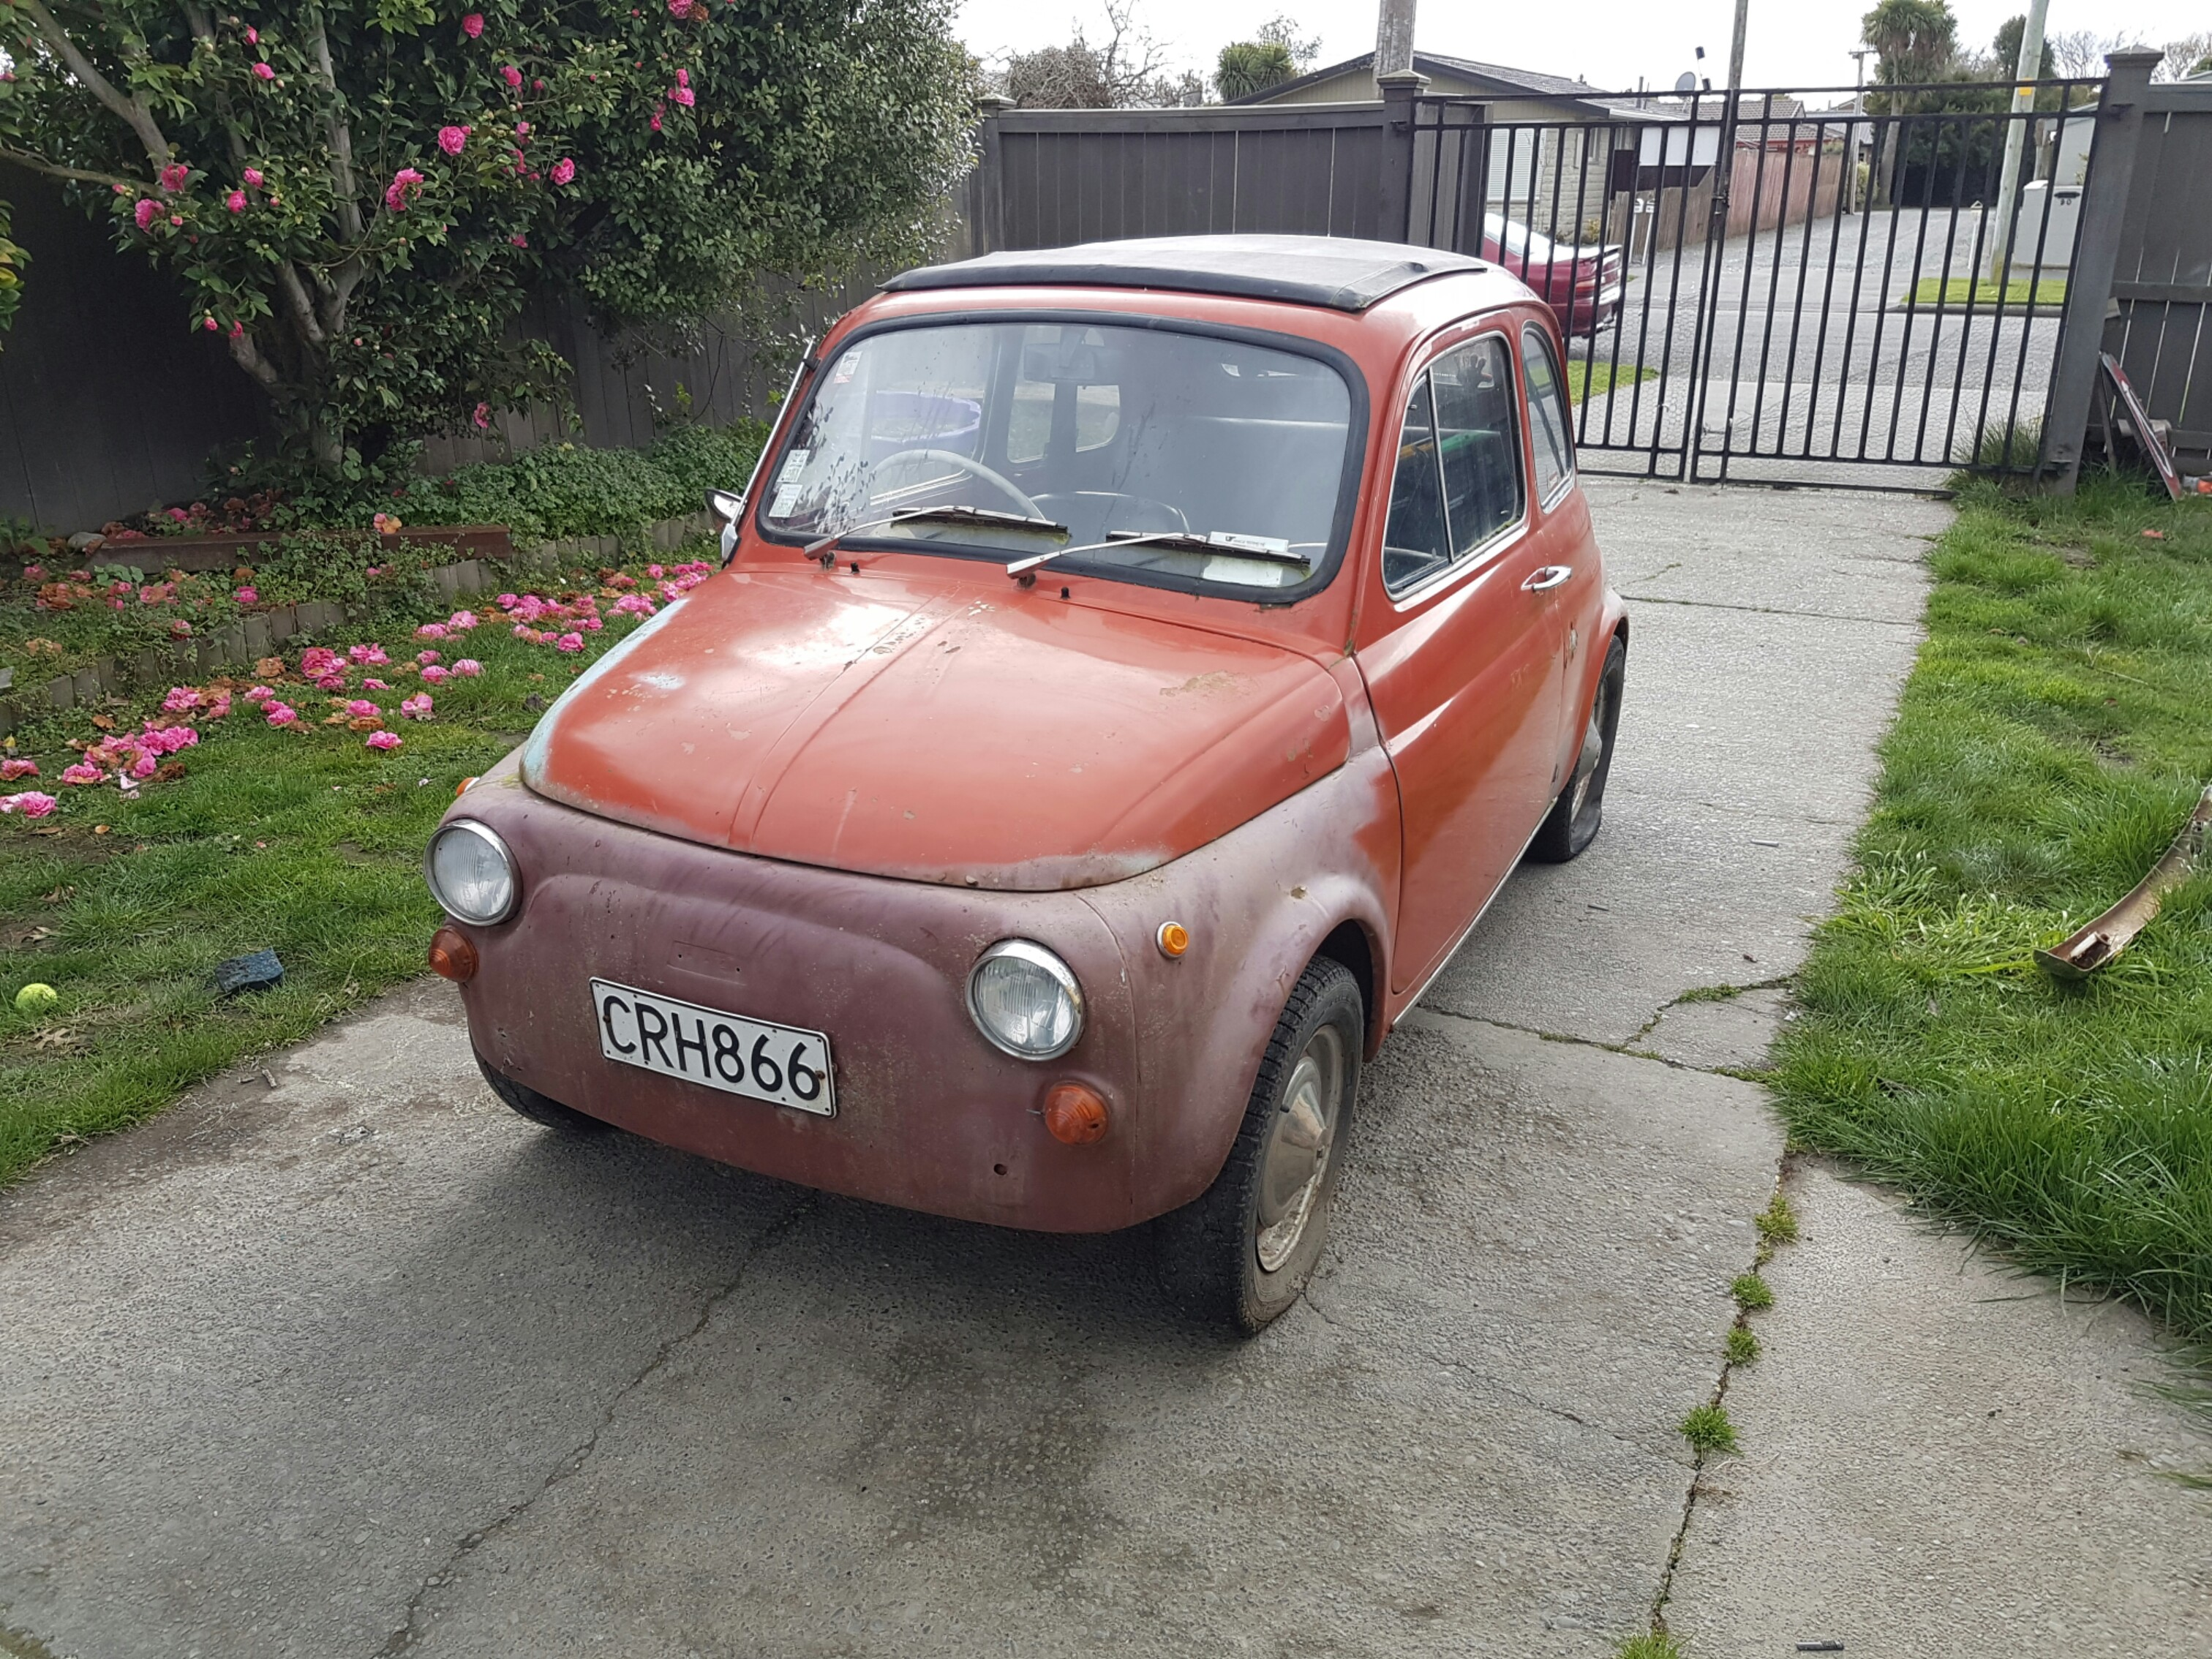 fiat nz wikimedia file commons wiki